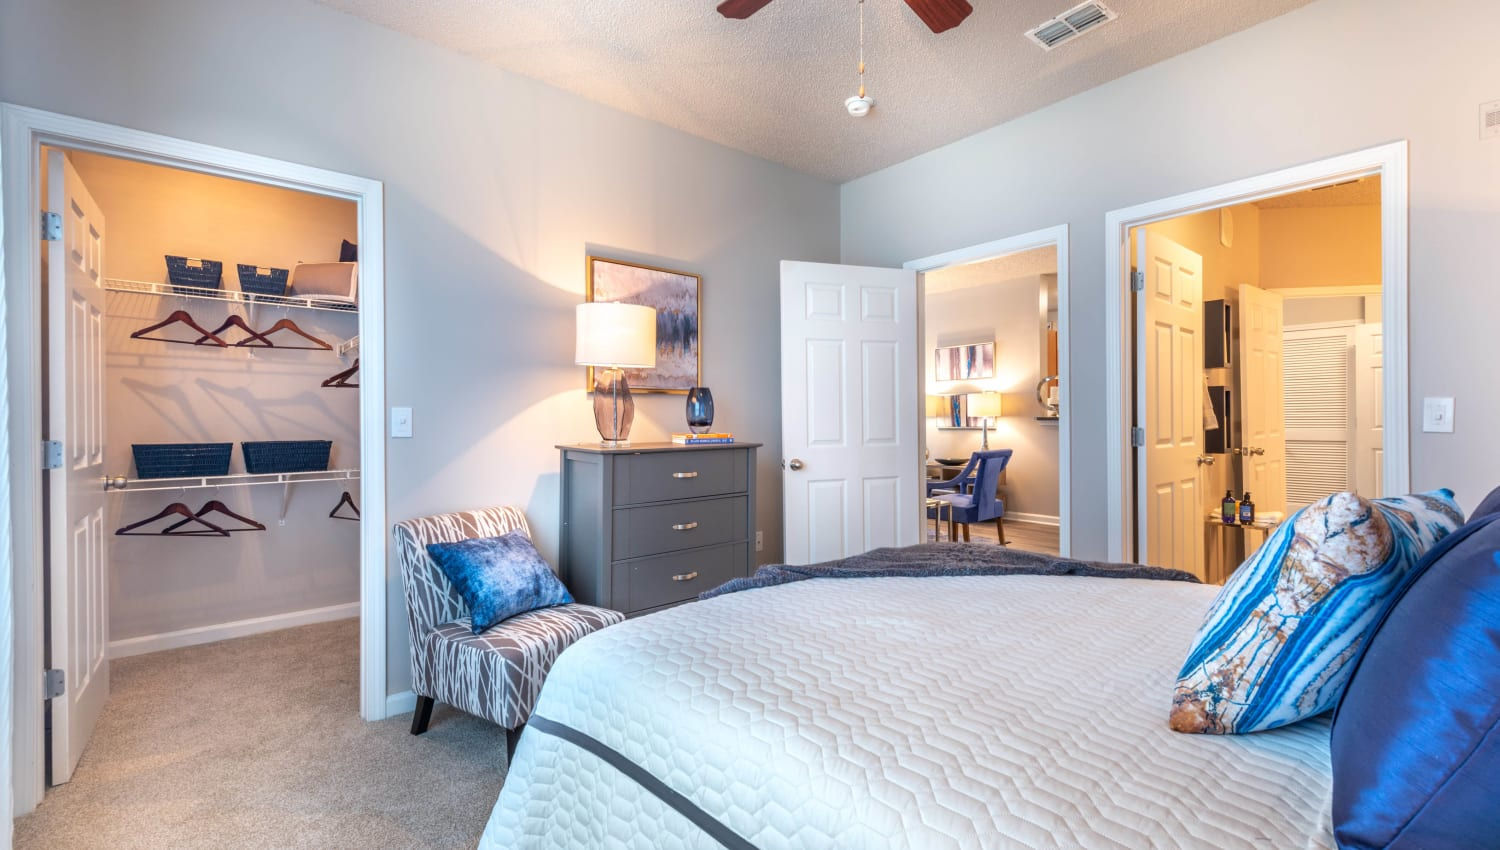 Model home's guest bedroom with a walk-in closet at Olympus Fenwick in Savannah, Georgia